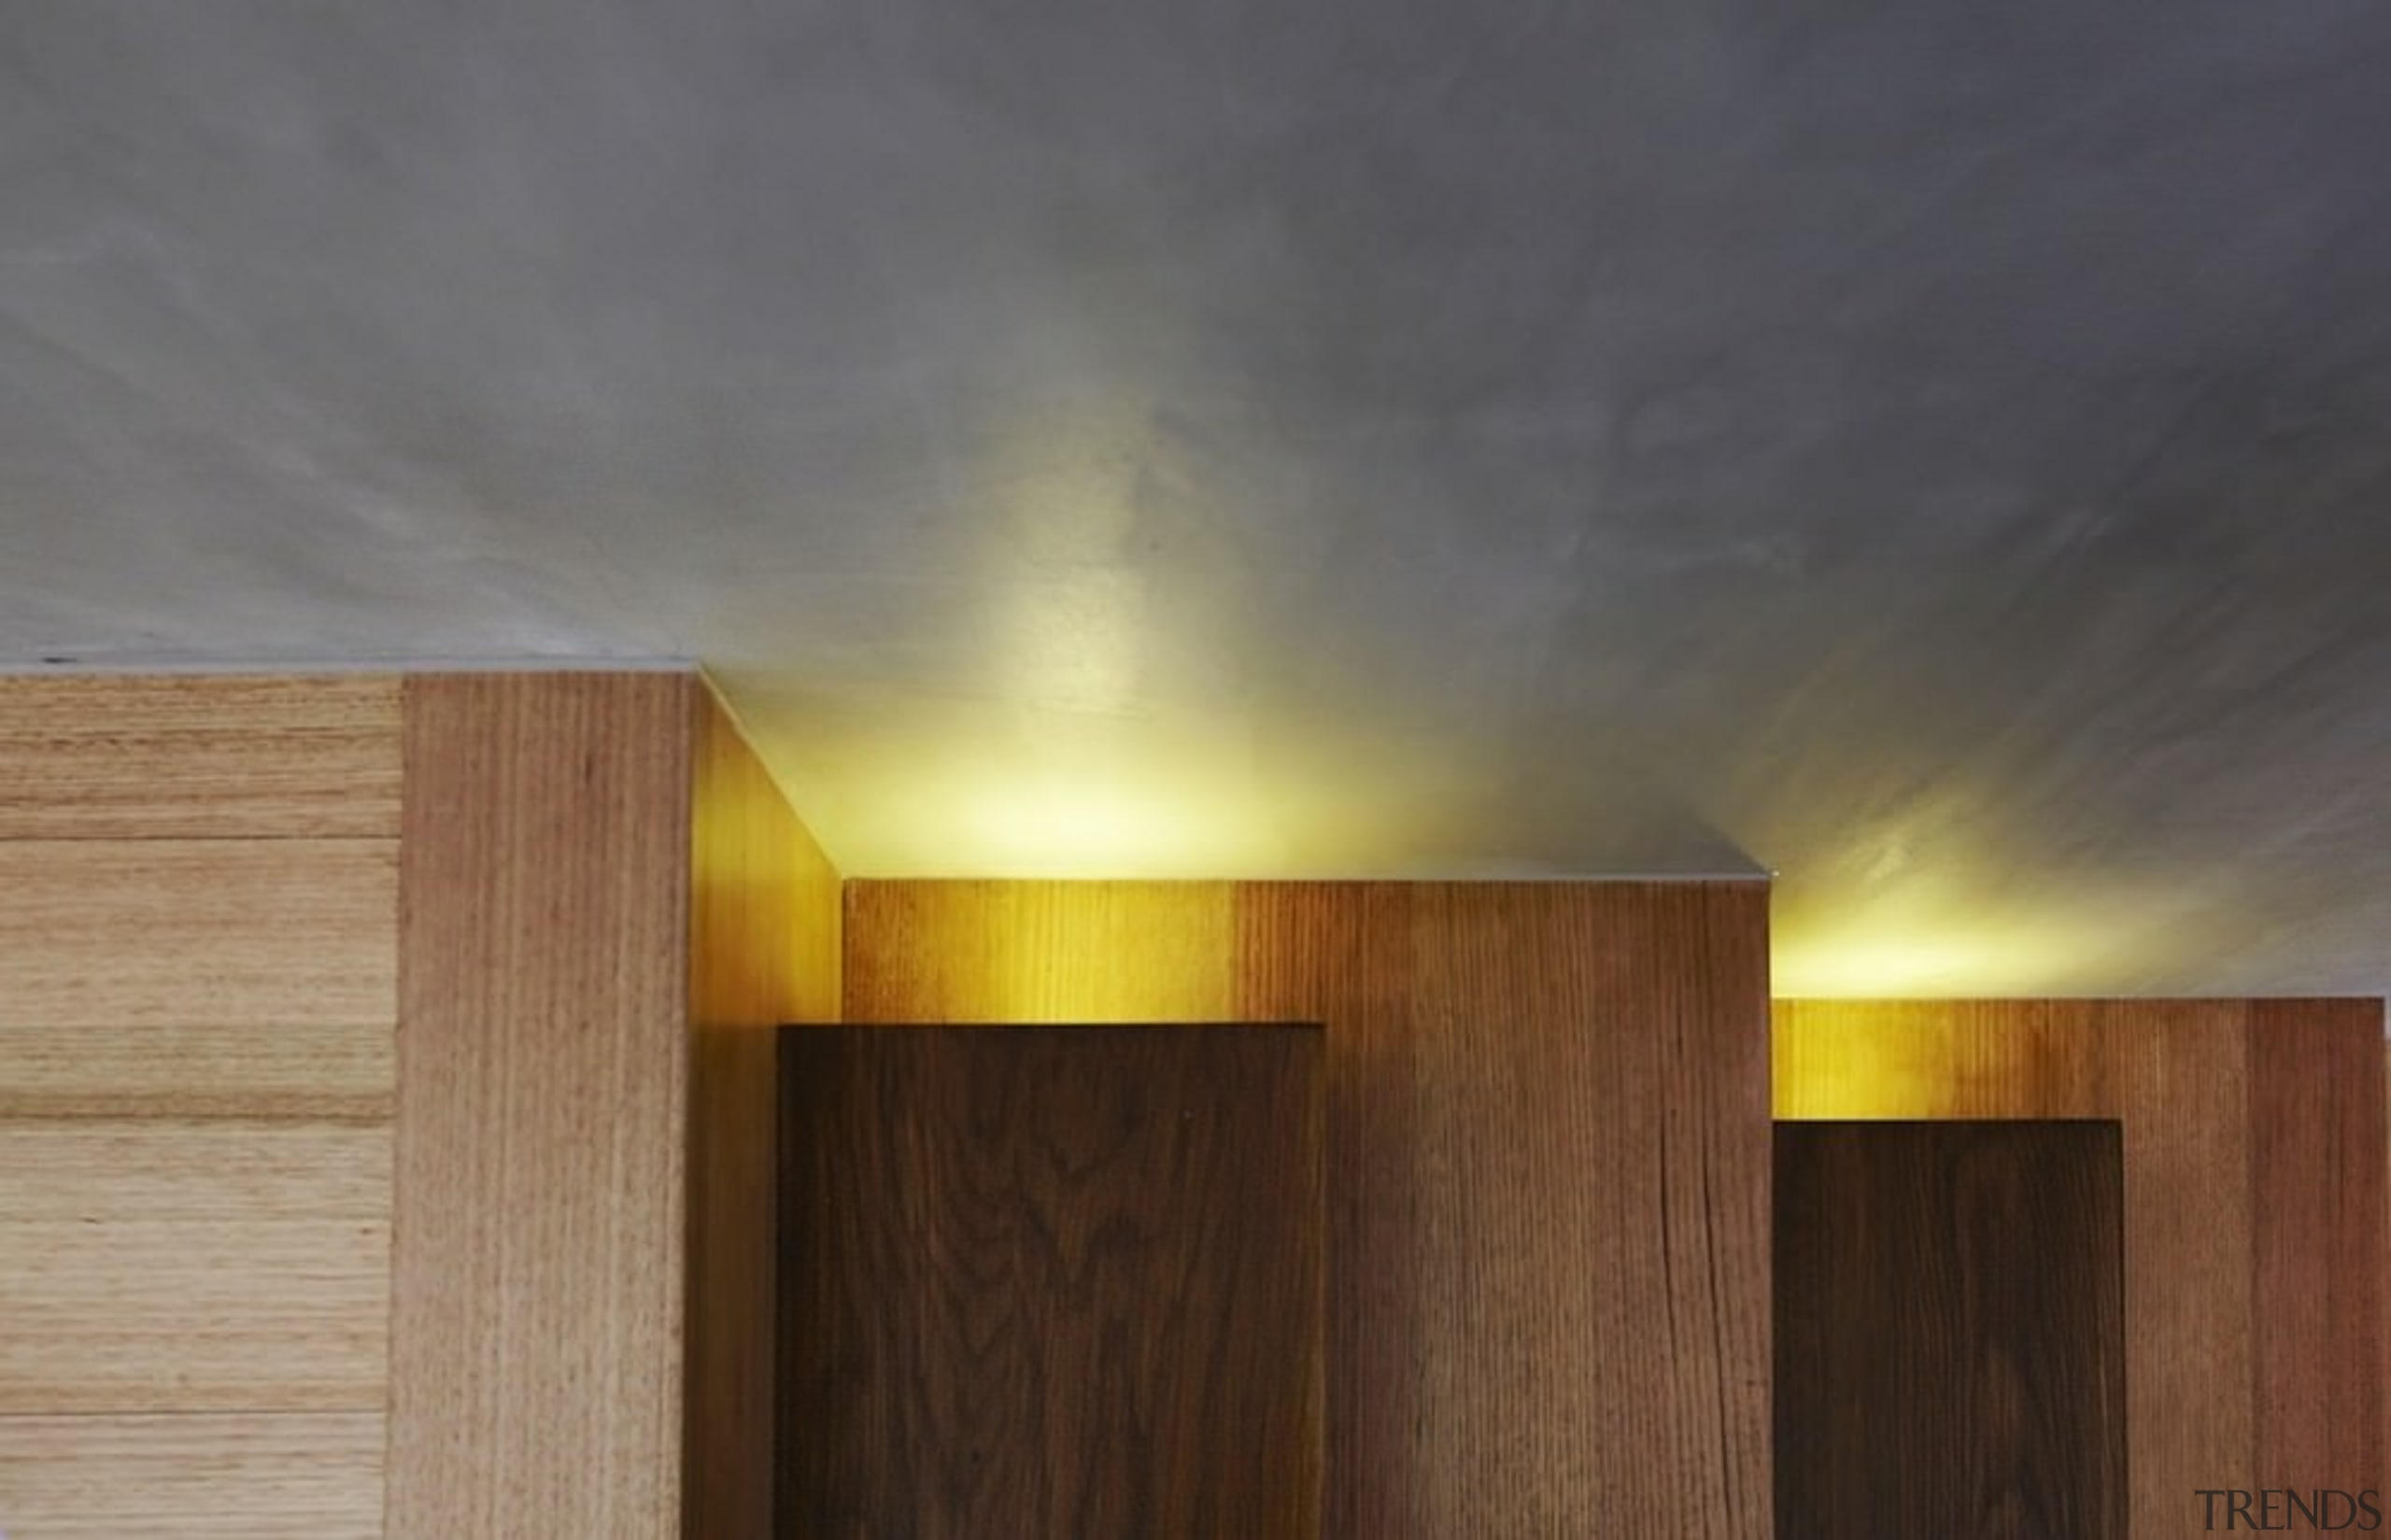 Recessed lighting bounces off the ceiling - Recessed architecture, light, light fixture, lighting, sky, wood, gray, brown